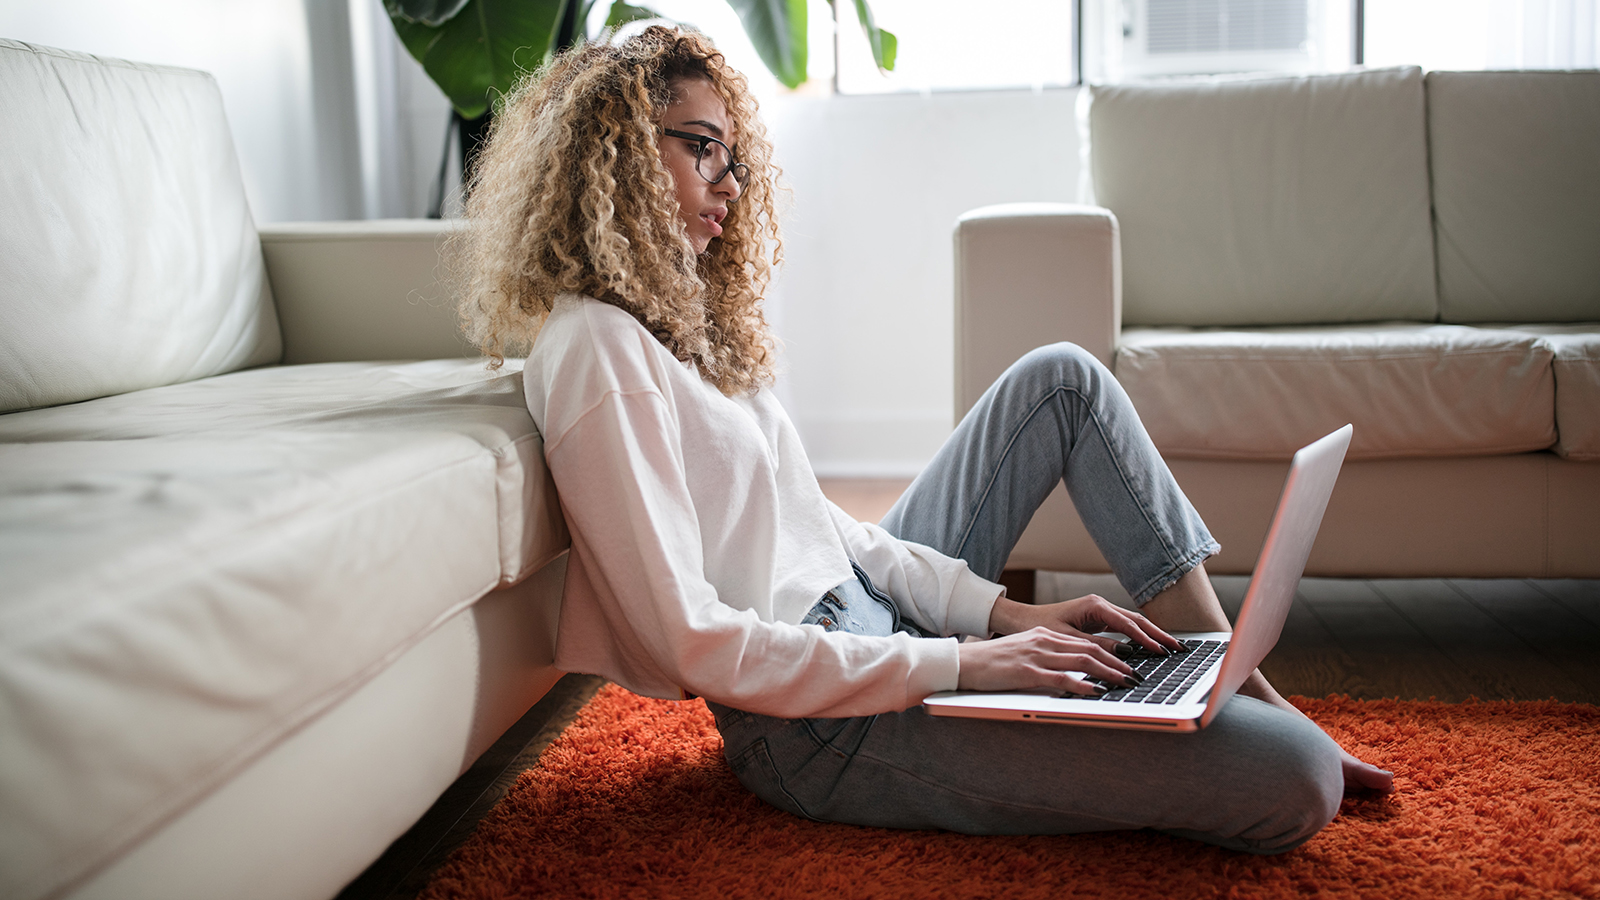 Working From Home? Here's How to Stay Focused on Work During COVID-19